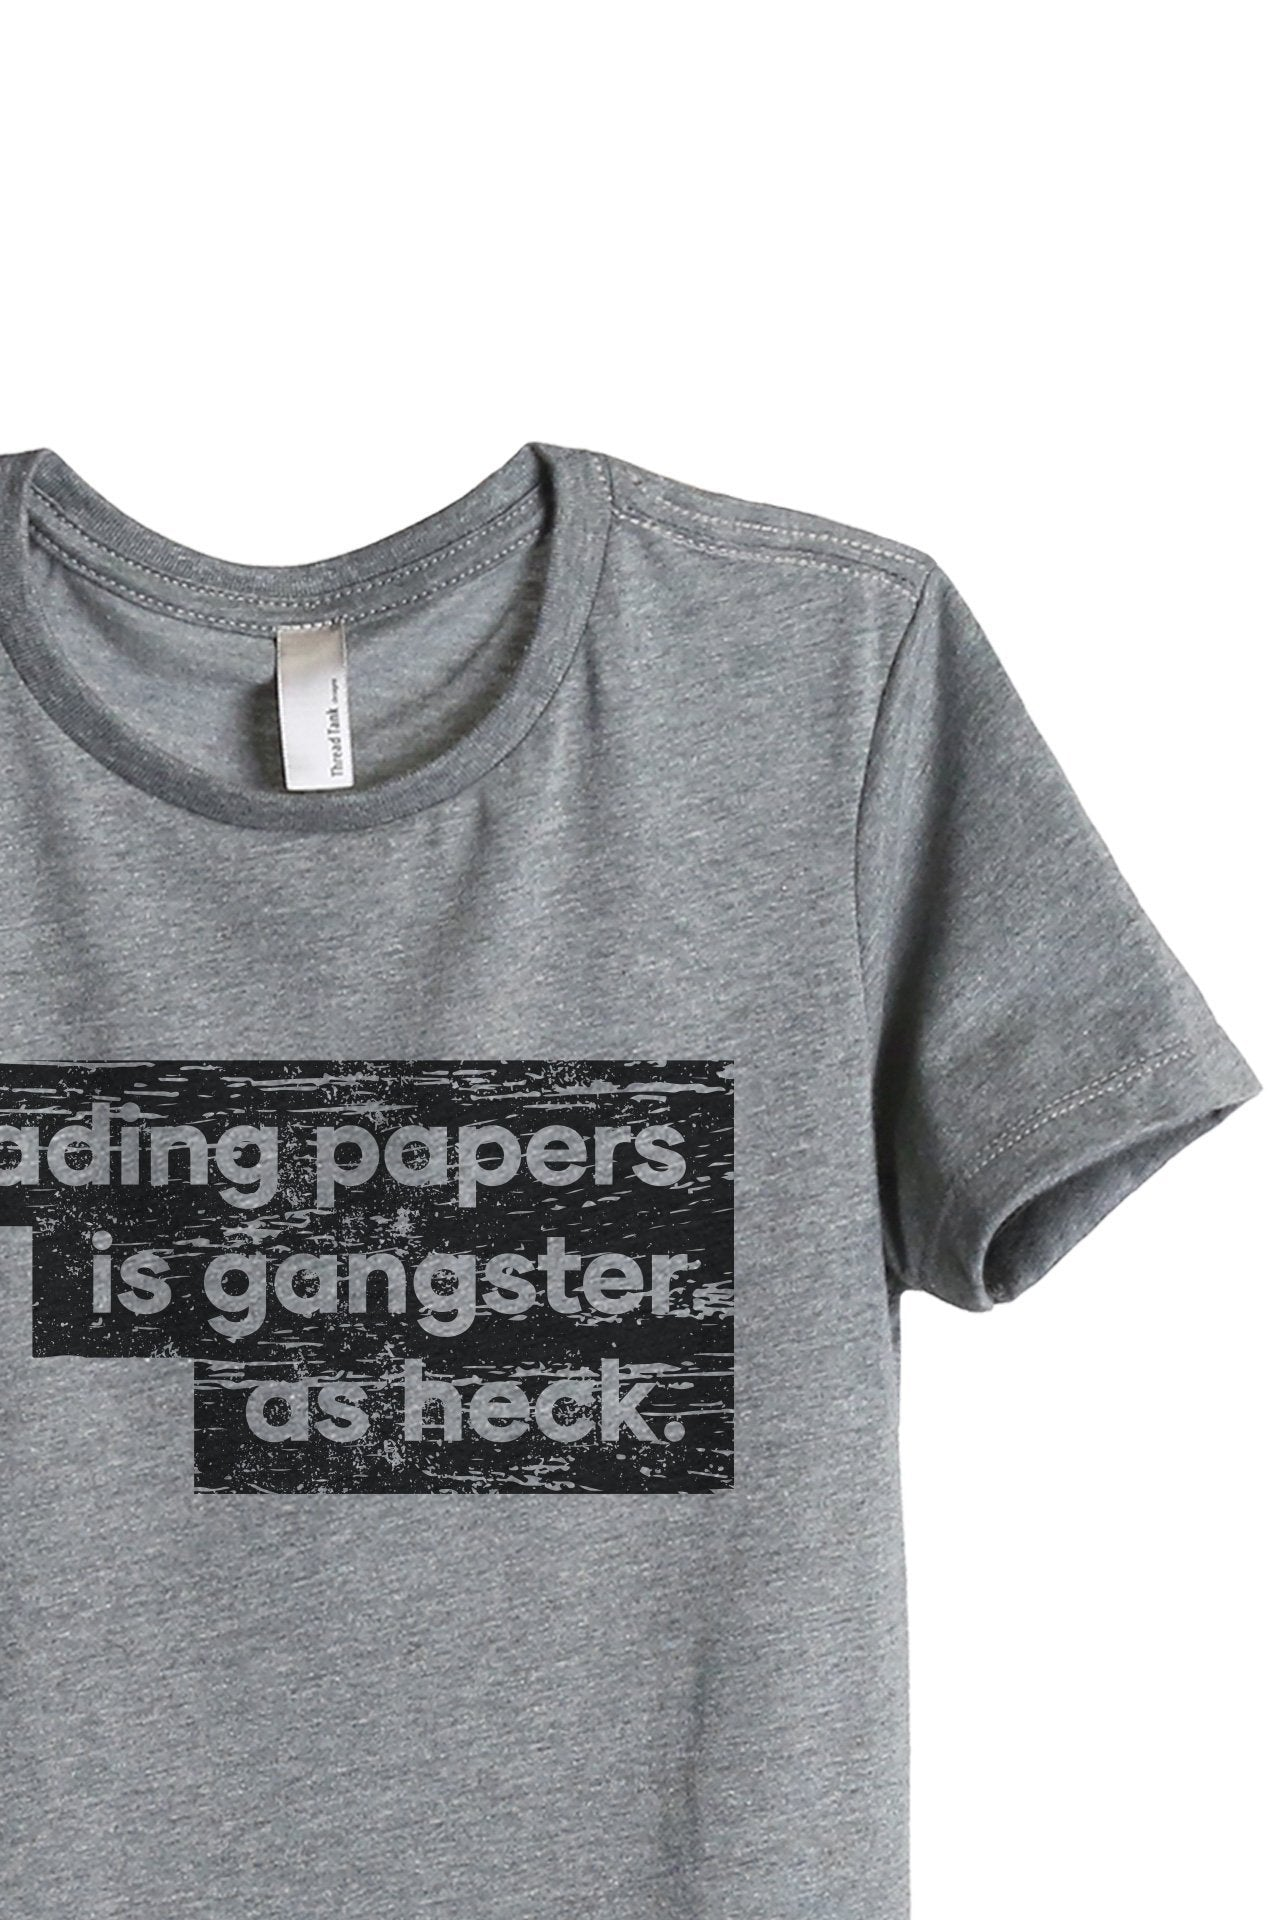 Grading Papers Is Gangster As Heck Women's Relaxed Crewneck T-Shirt Top Tee Heather Grey